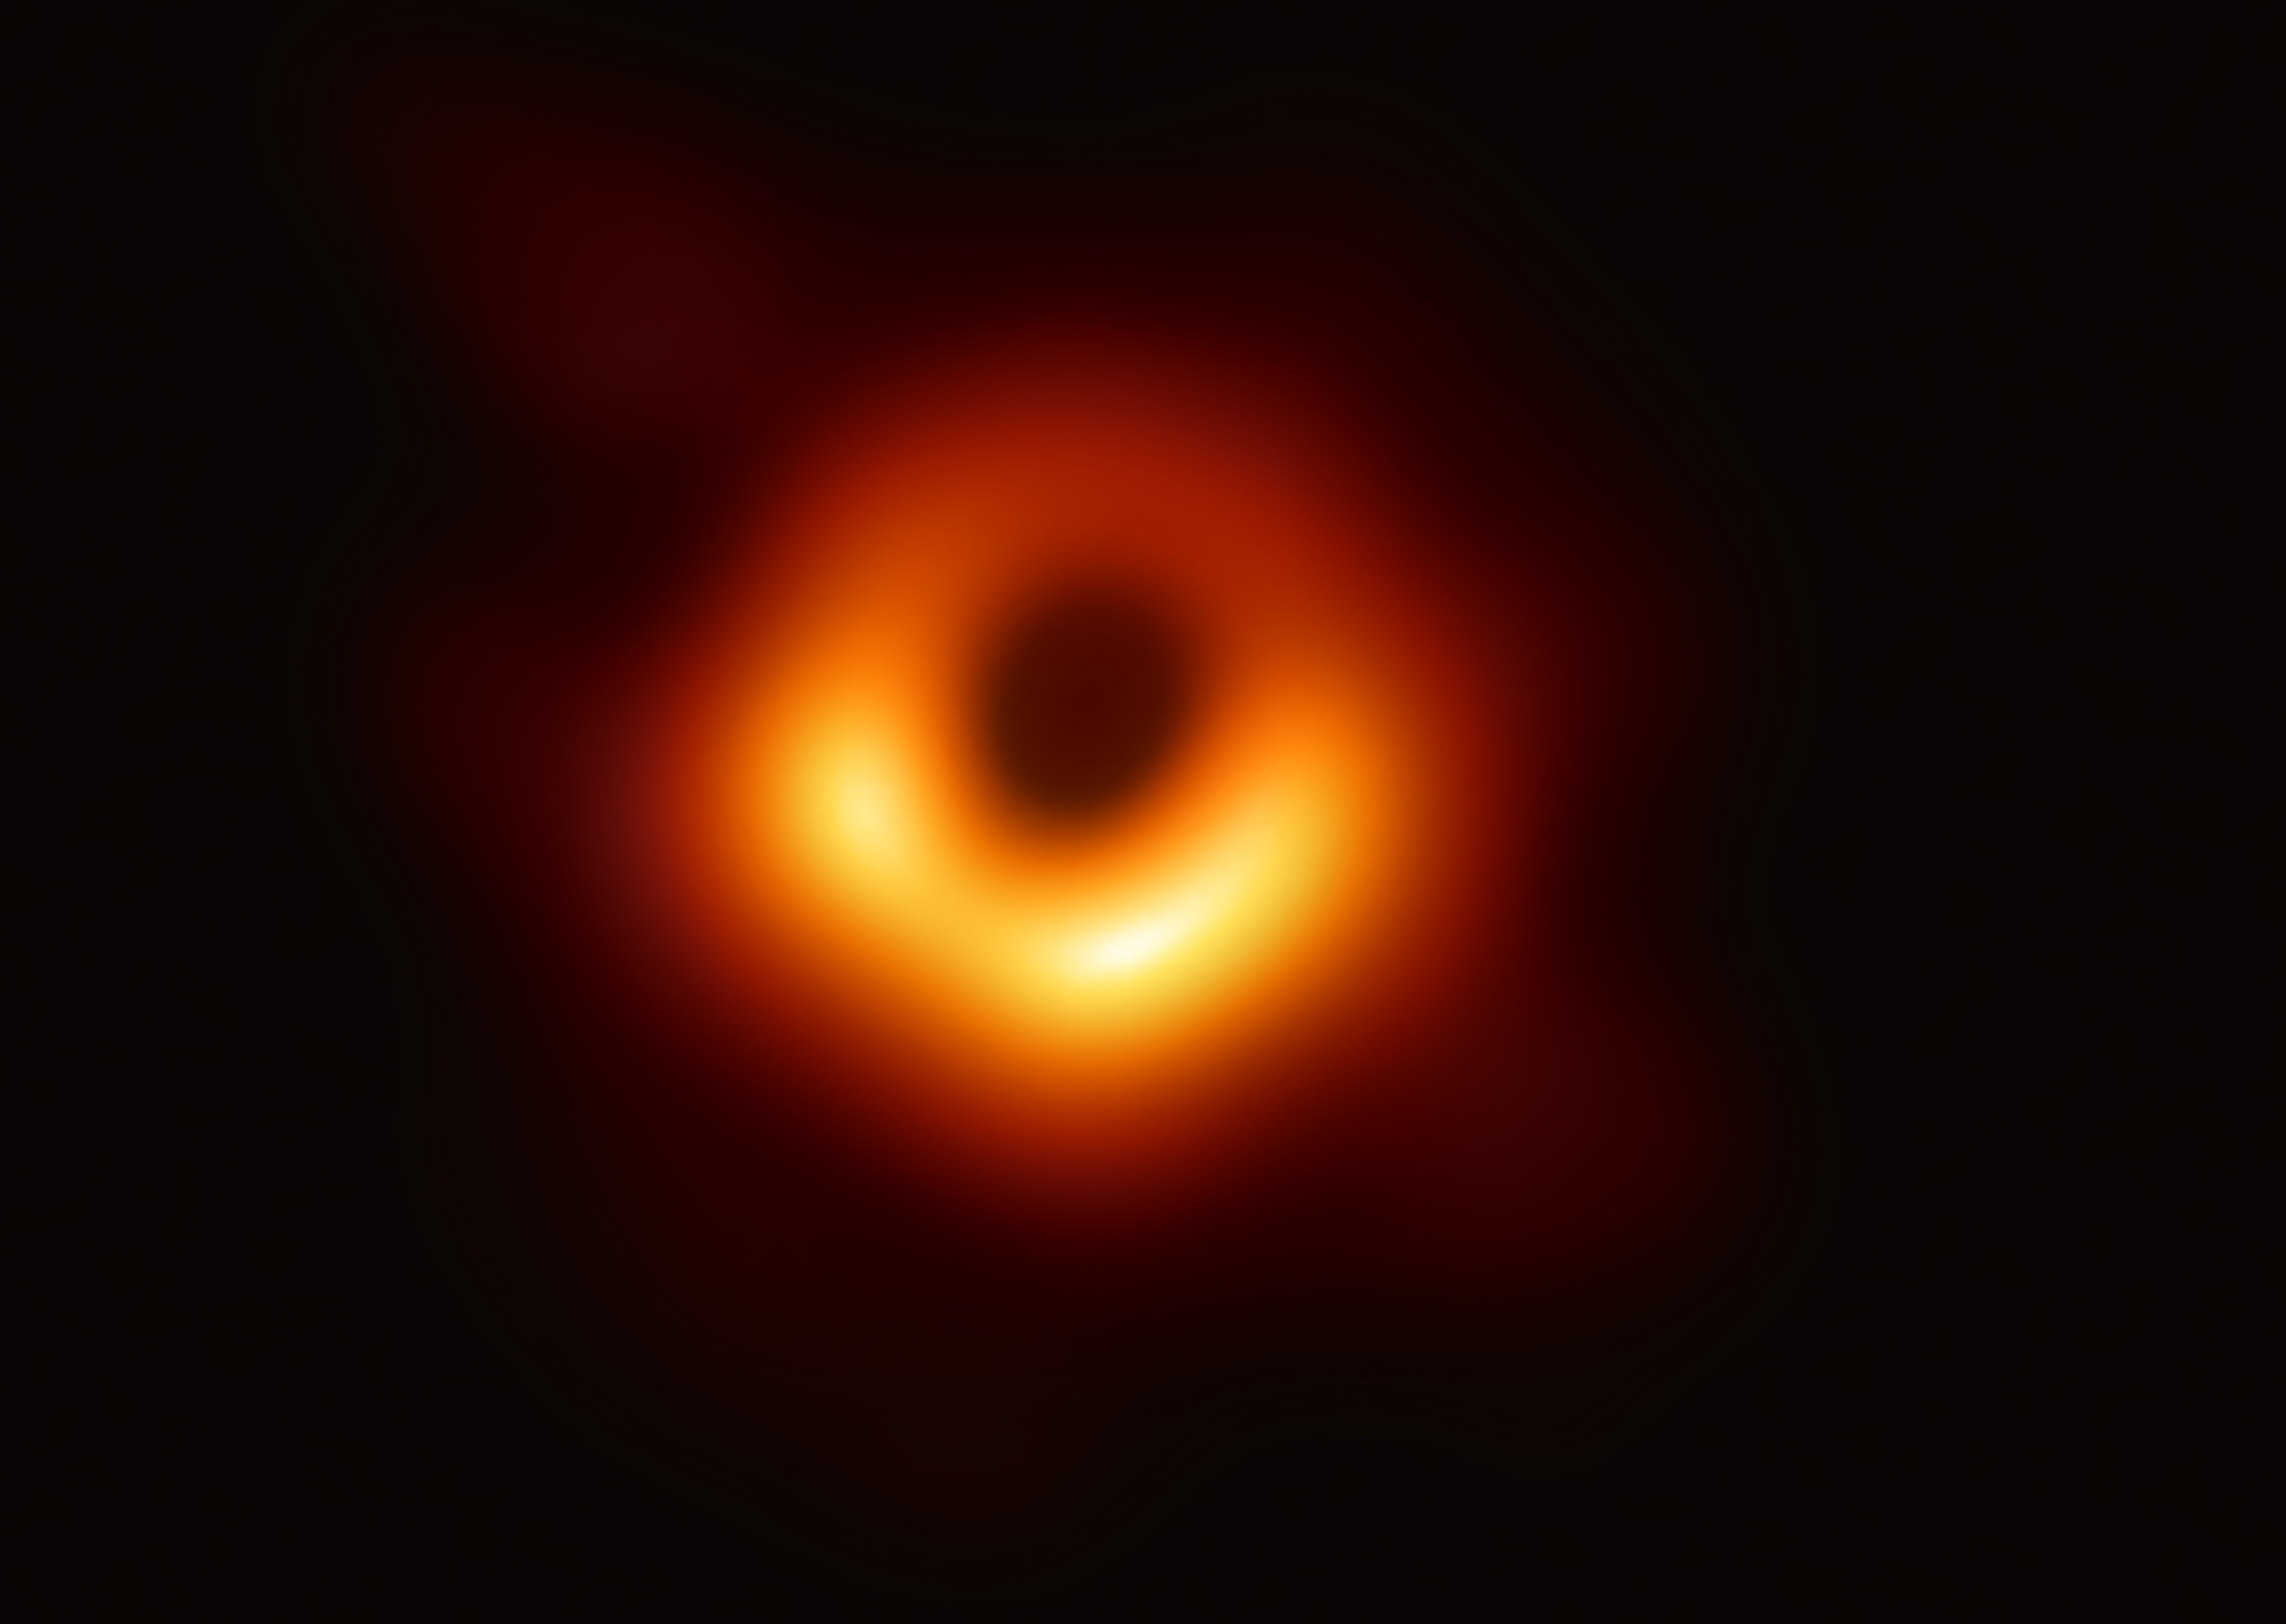 first black hole picture - HD1600×1067